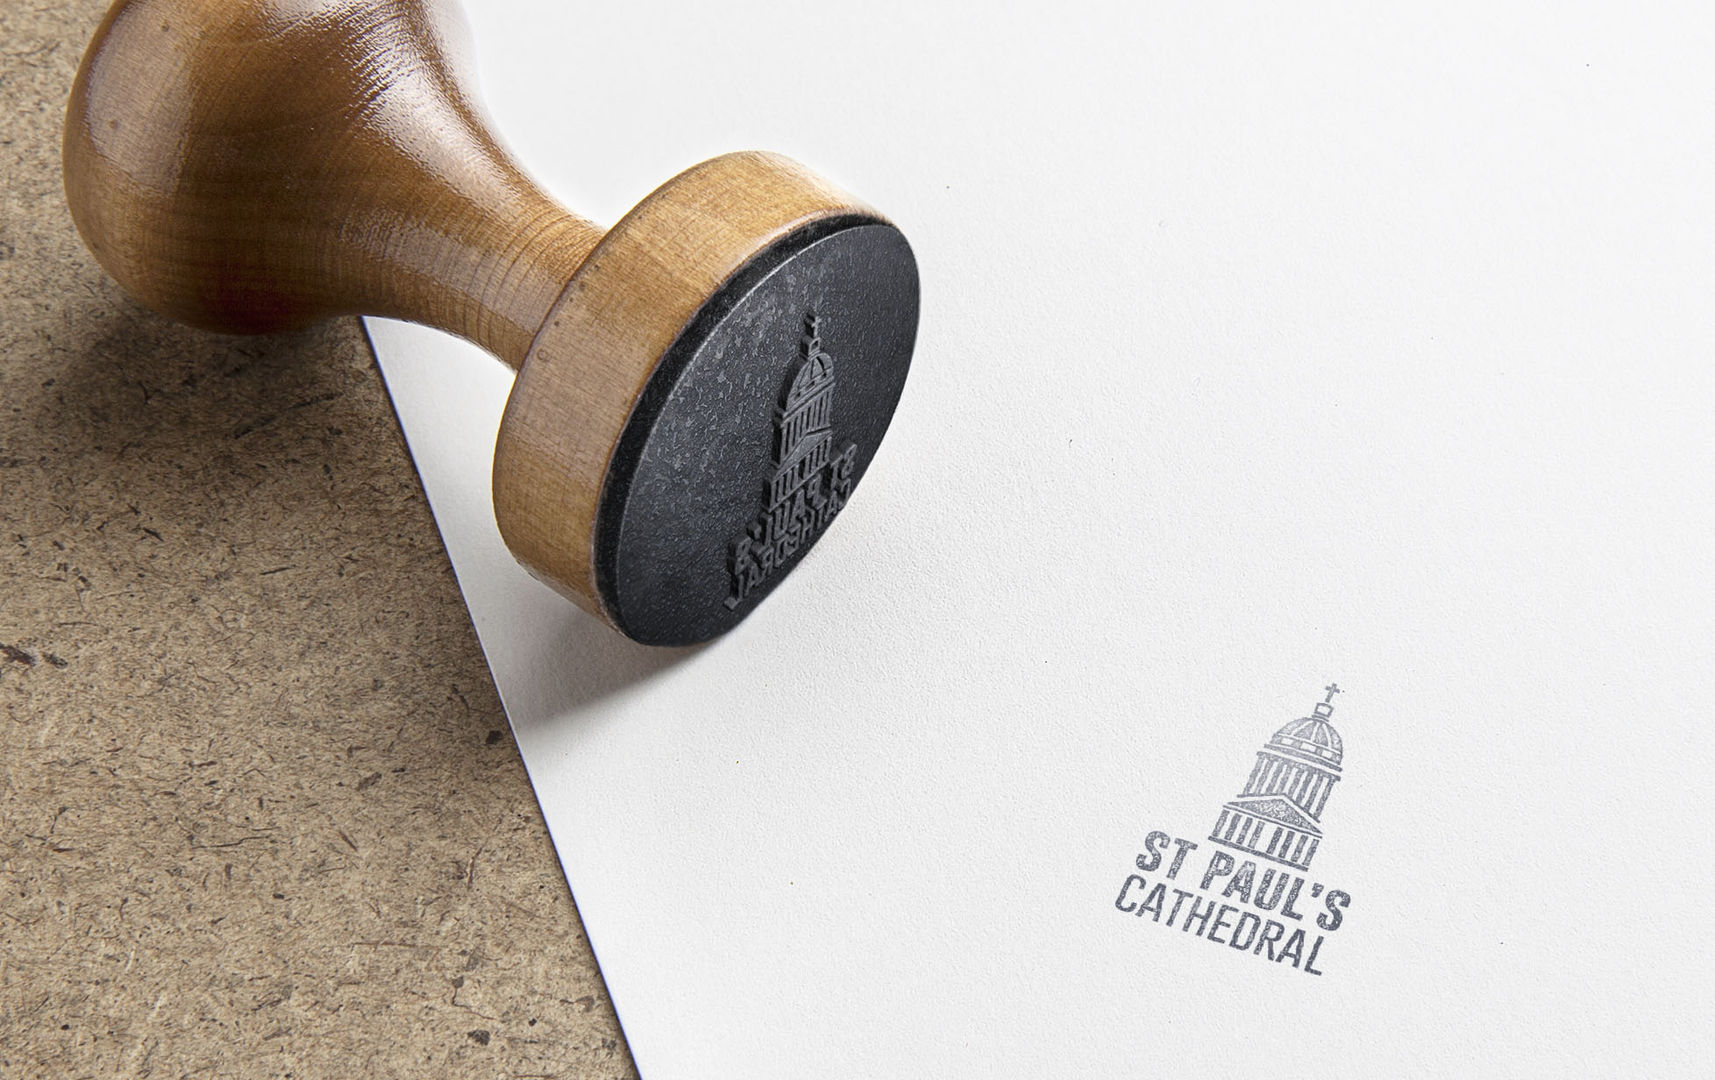 St-Pauls-Cathedral-logo-stamp.jpg